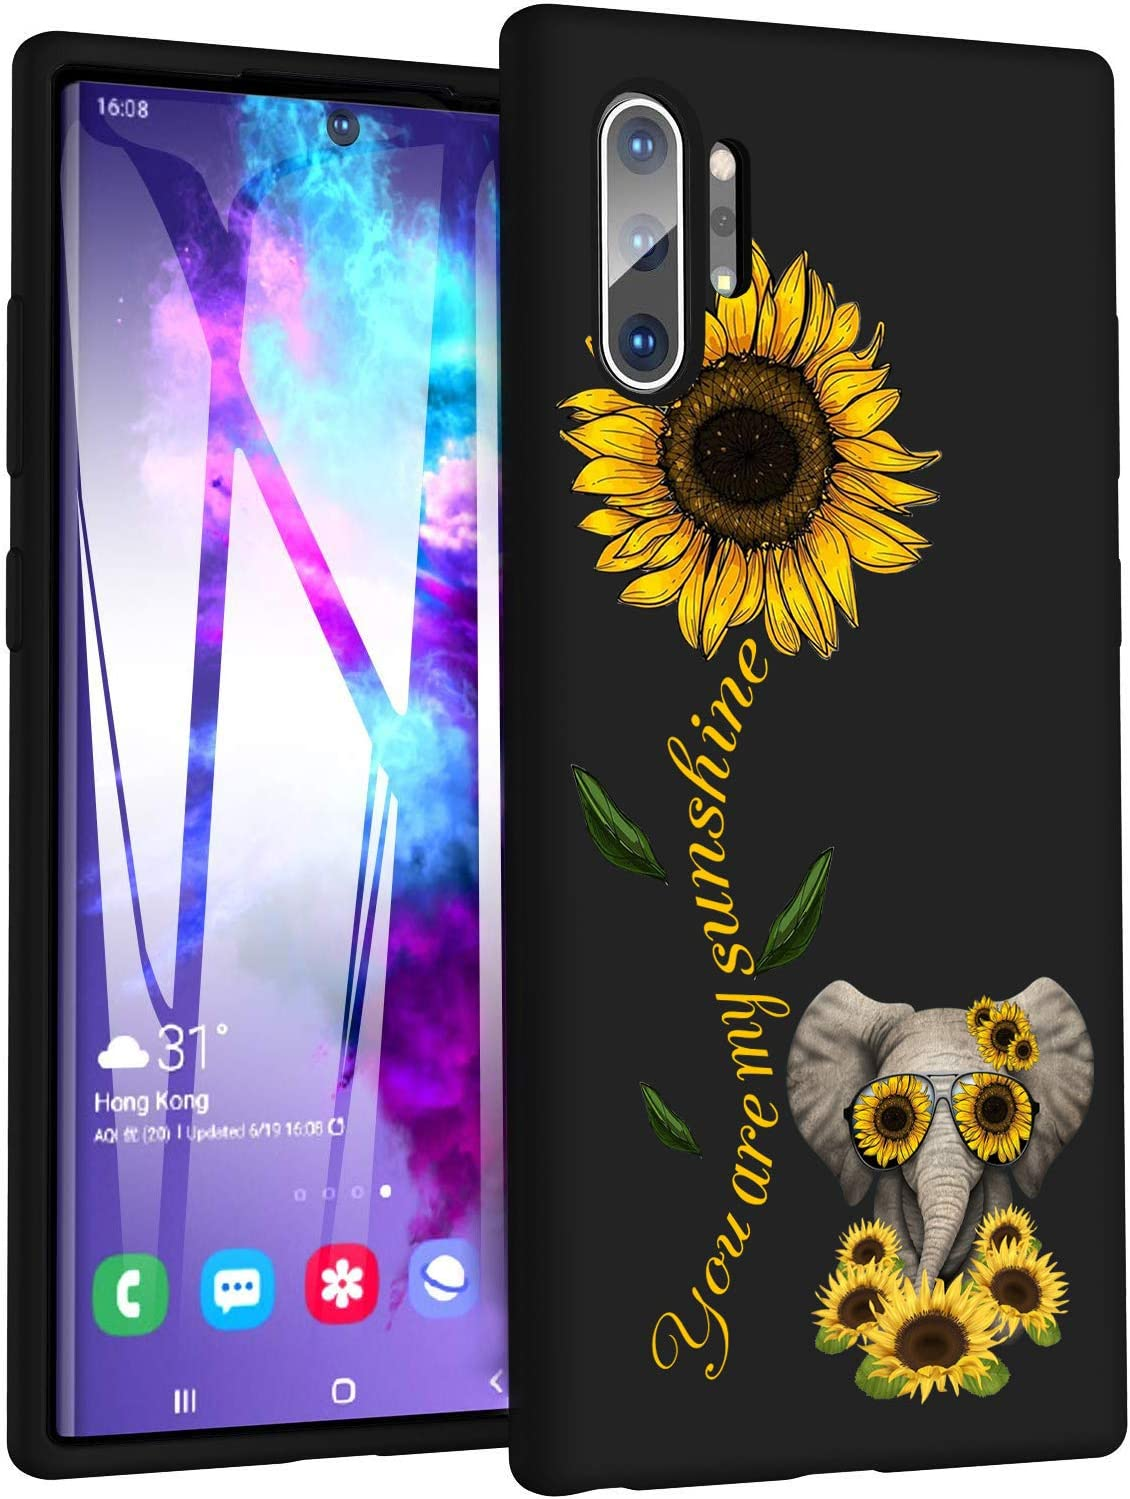 Good-Luck Galaxy Note 10 Plus/Note 10 Plus 5G Case,Sunflower and Cute Elephant Slim Anti-Scratch Shockproof Leather Grain Soft TPU Back Protective Cover Case for Samsung Galaxy Note 10 Plus (2019)